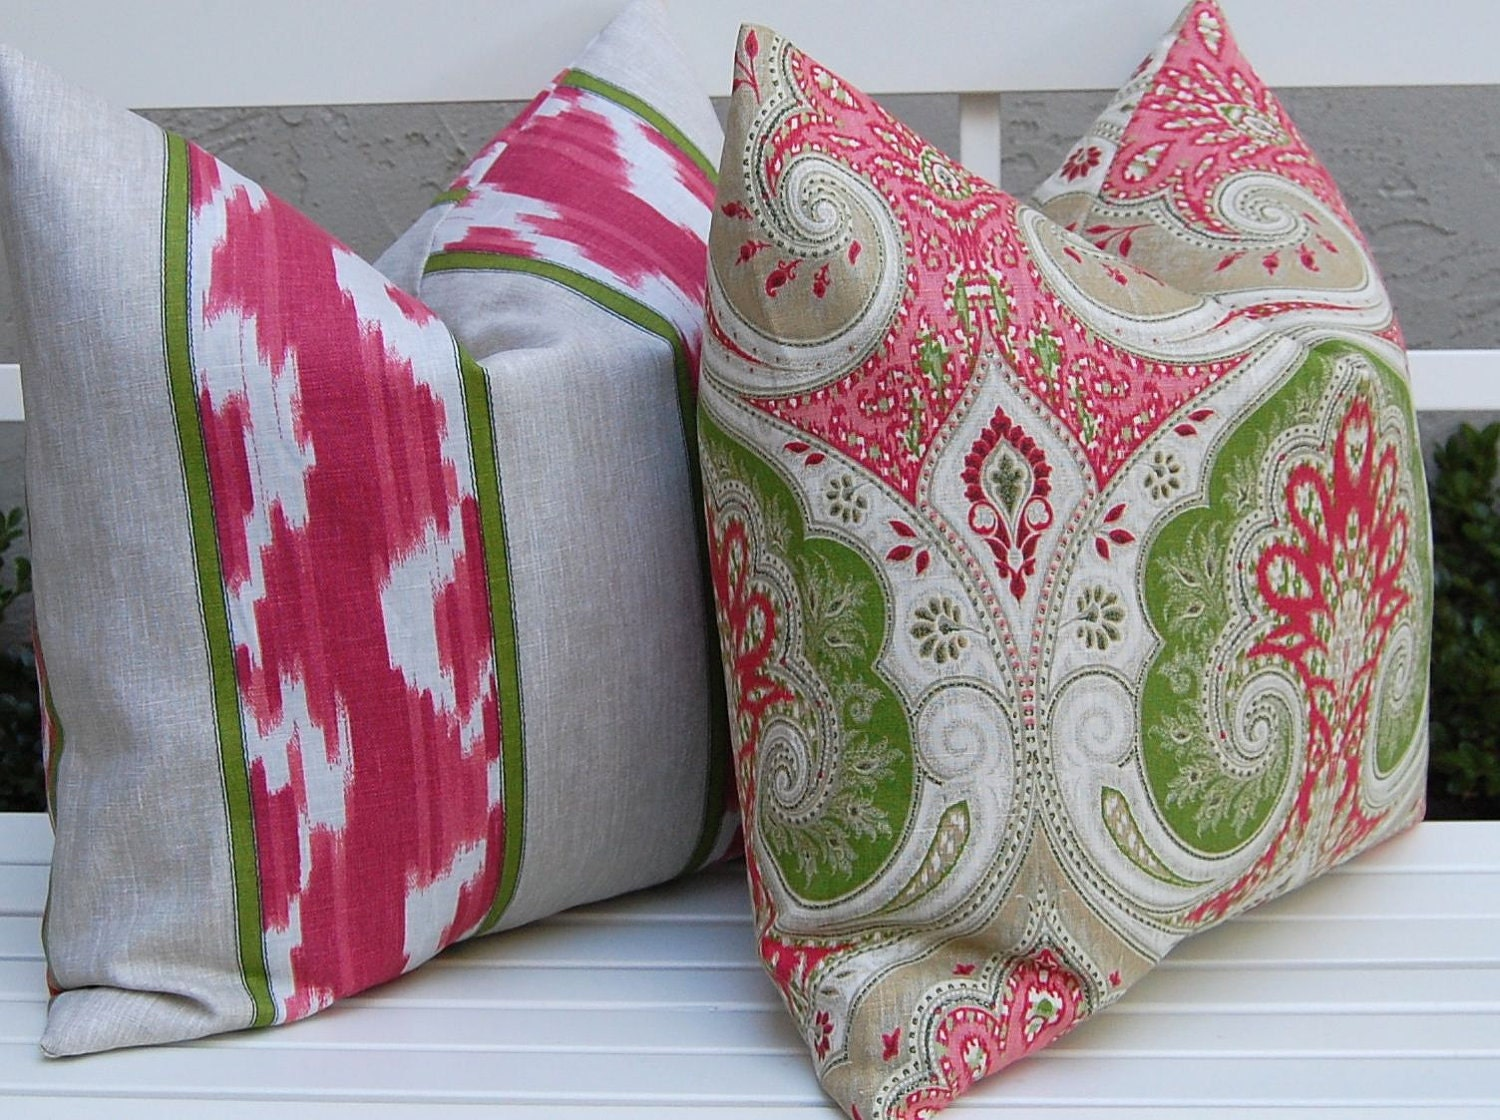 Etsy Pink Throw Pillow : Decorative Pillows Pink and Green Pillow Covers 20 x 20